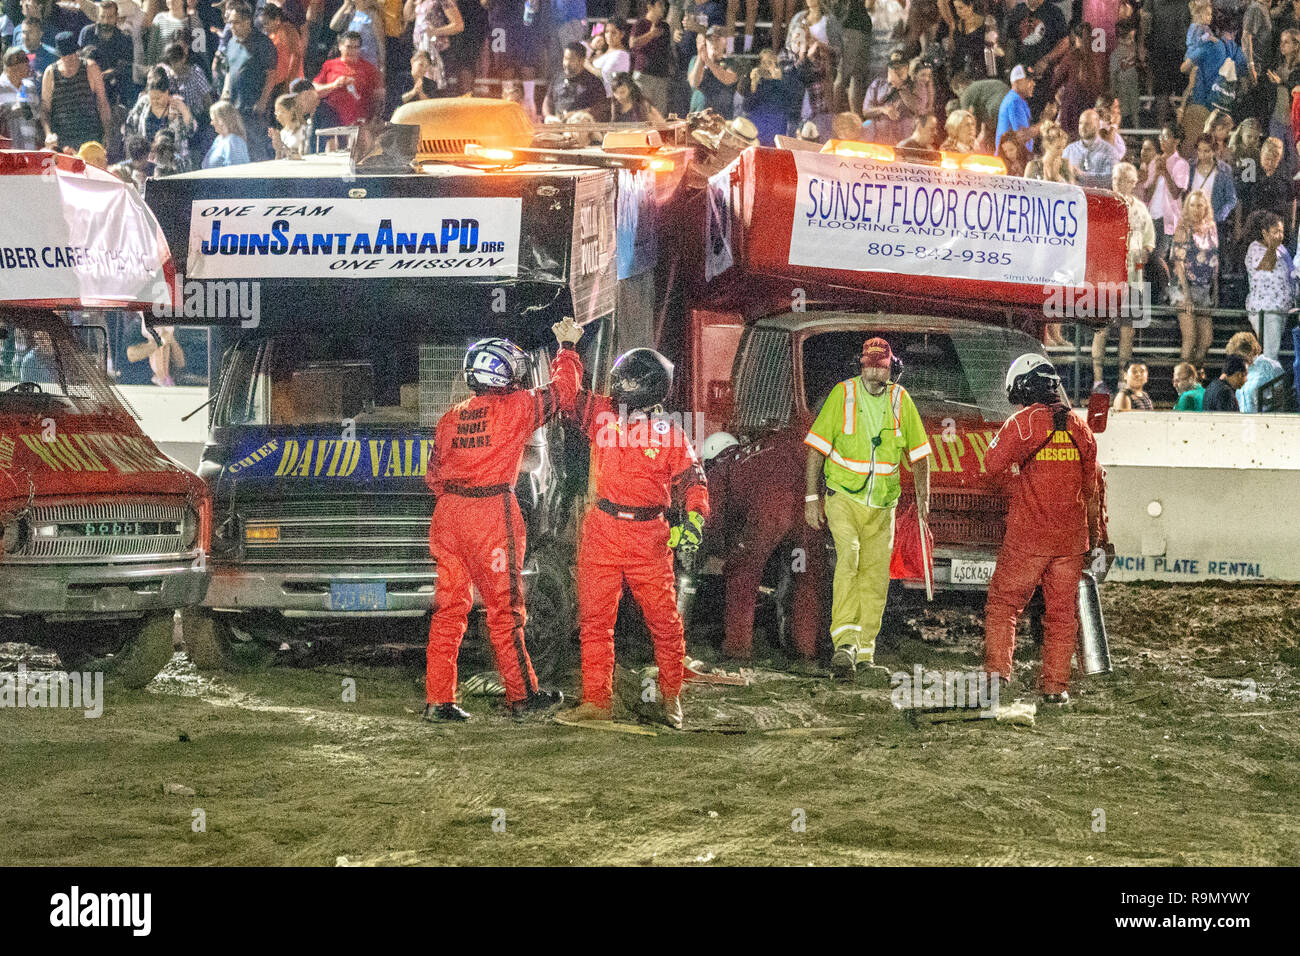 Drivers in safety clothes and crash helmets congratulate each other with high fives at the finish of a motor home demo derby in a Costa Mesa, CA, stadium. - Stock Image